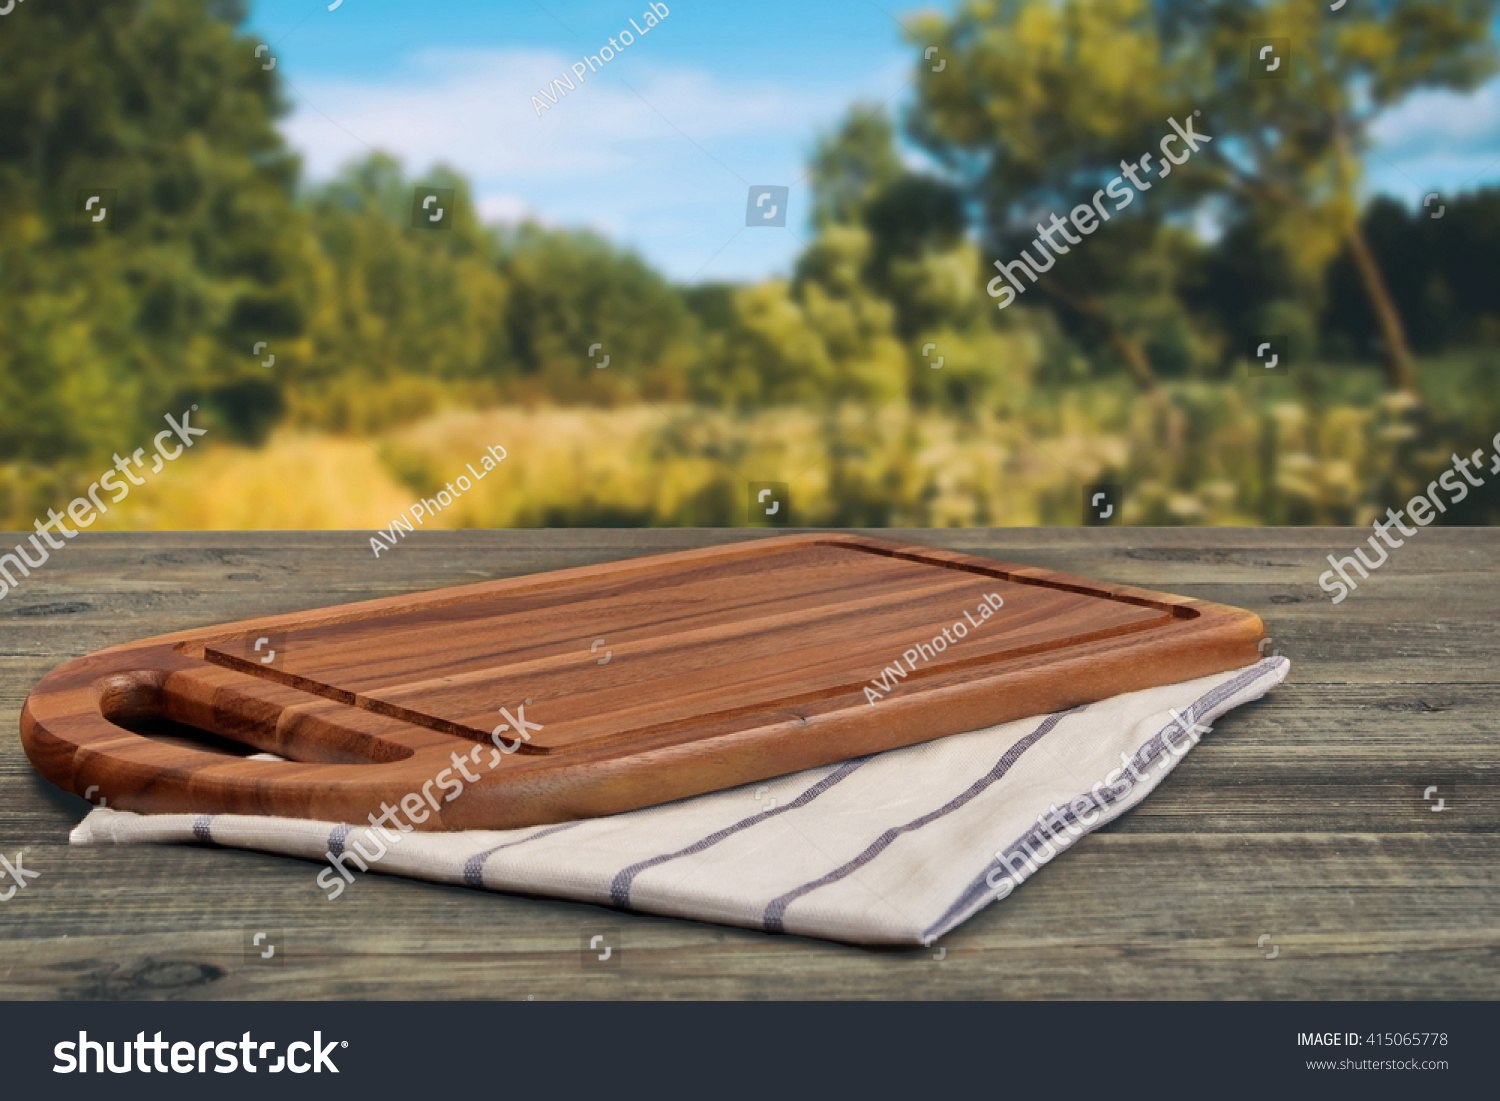 Wooden Cutting Board Closeup On Picnic Stock Photo Edit Now - Picnic table raft